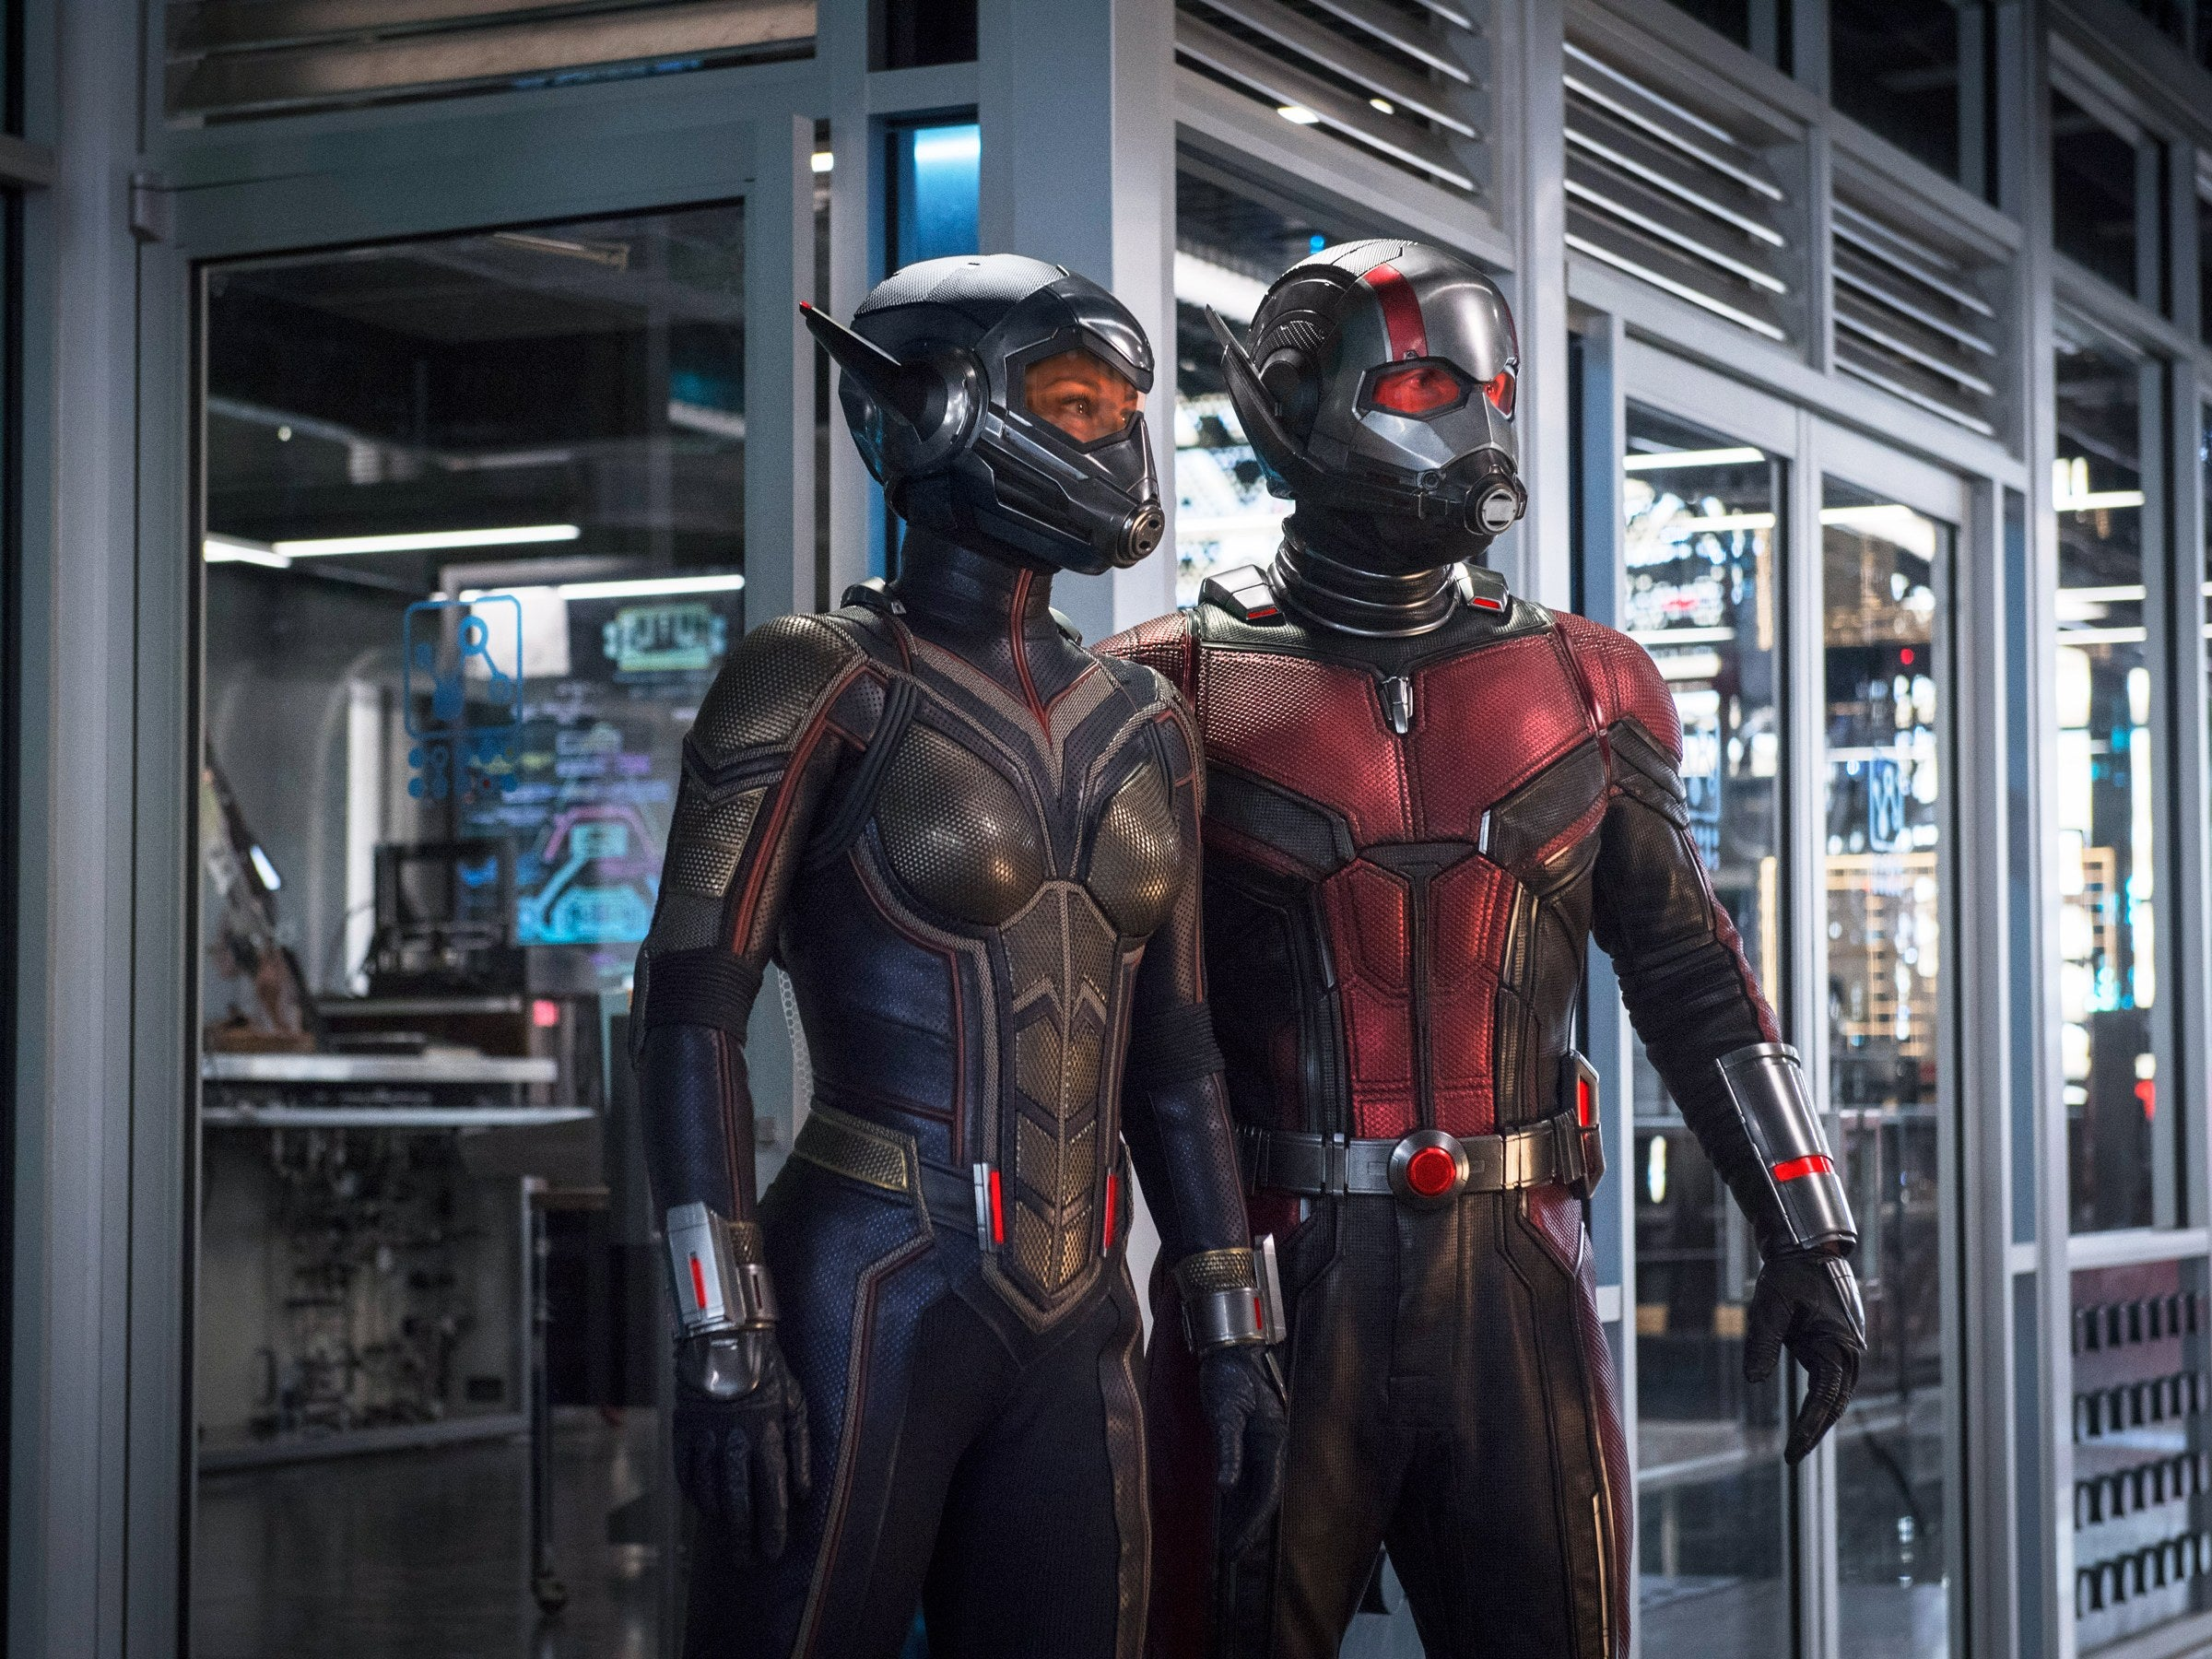 Marvel's Ant-Man & The Wasp - 4K Limited Edition SteelBook